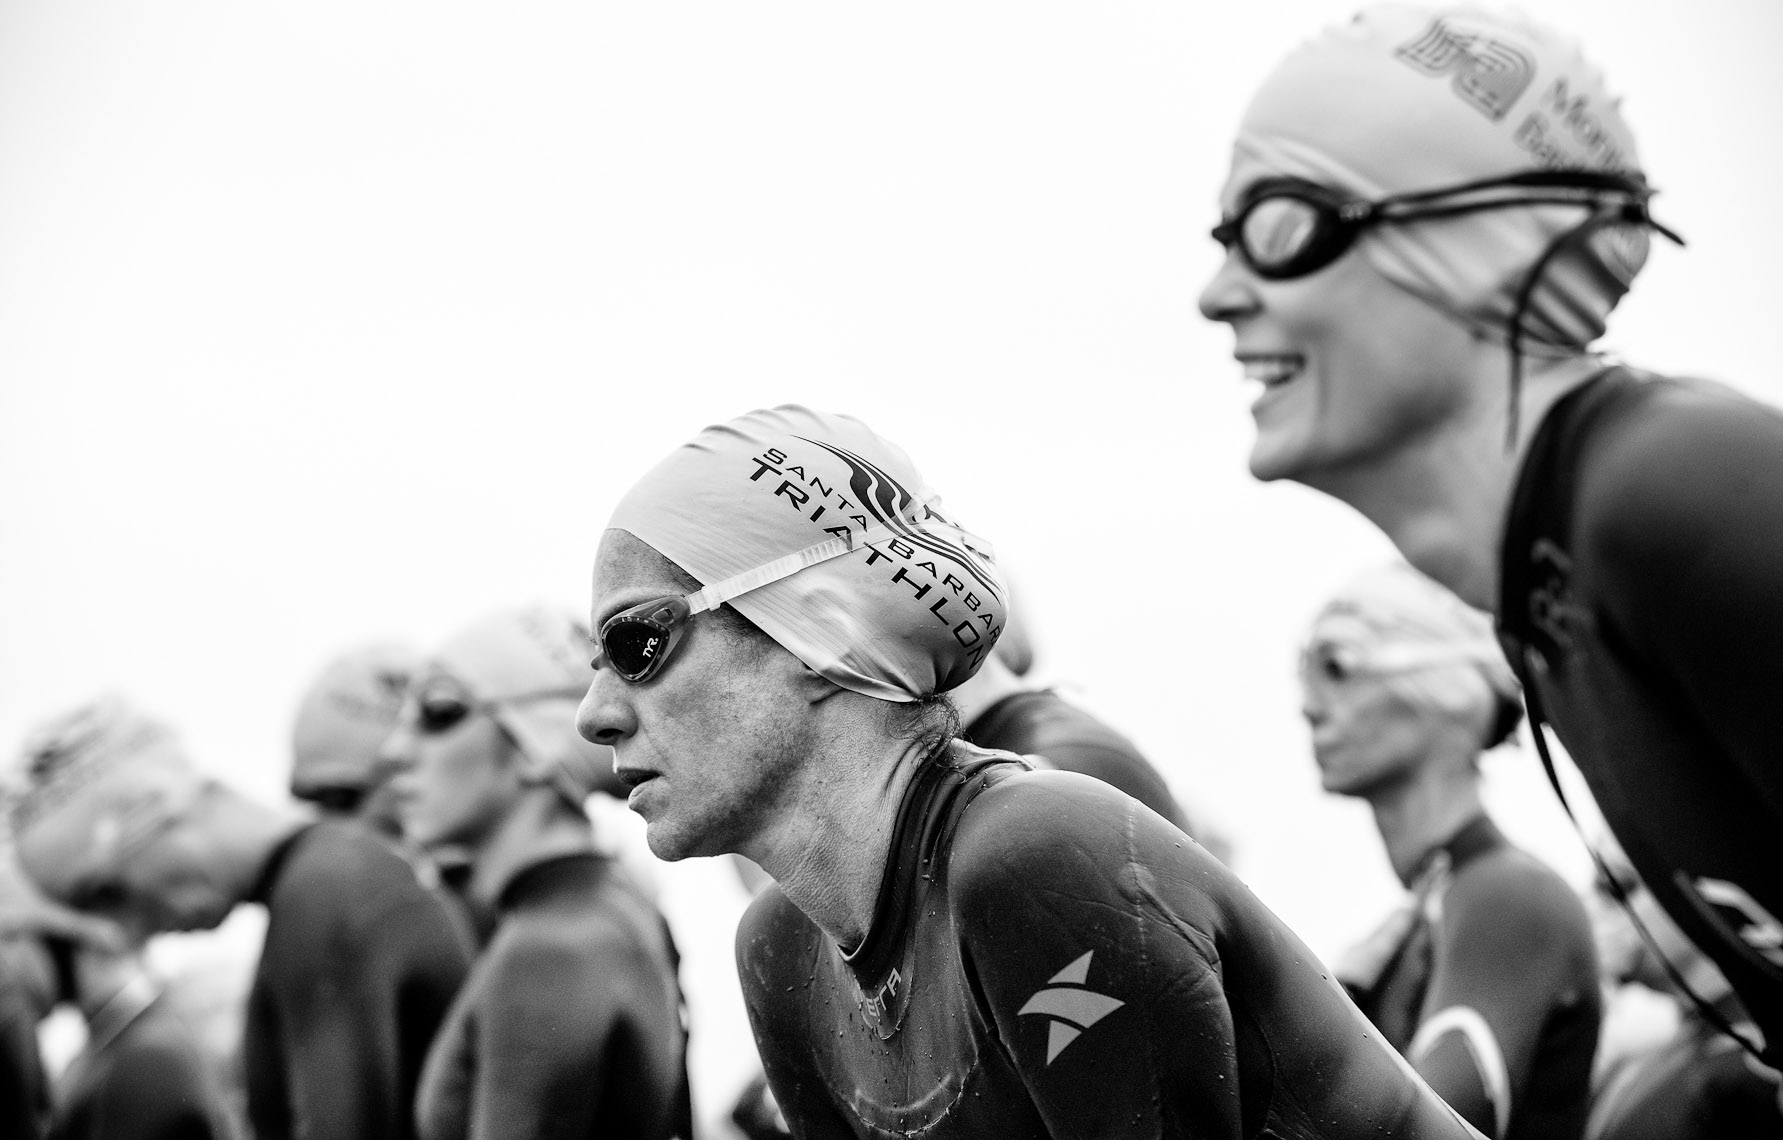 Kevin Steele - close up of triathletes faces at the starting line